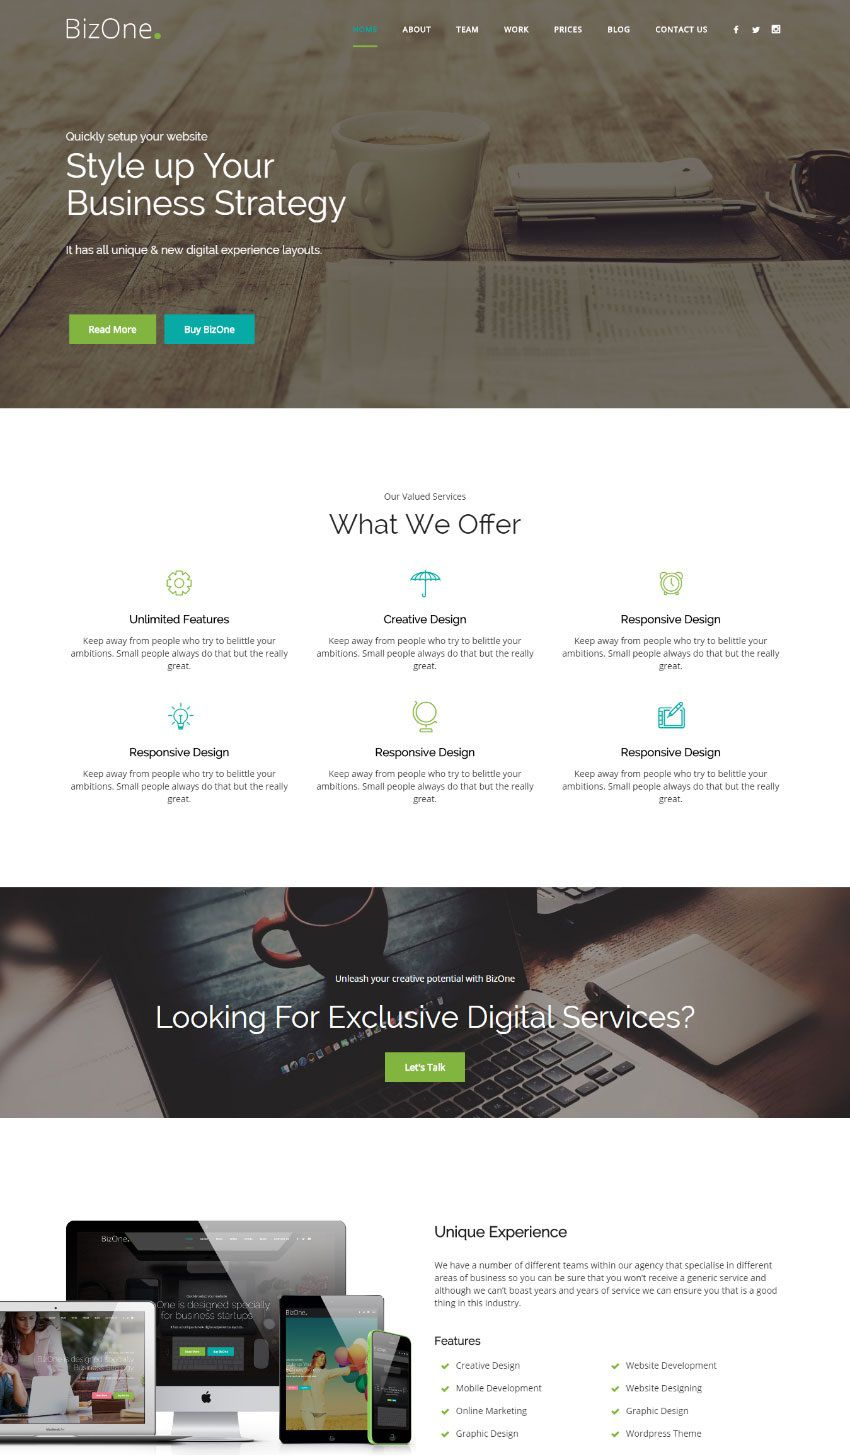 001 Stirring Single Page Web Template Image  Templates One Website Free Download Html5 BootstrapFull